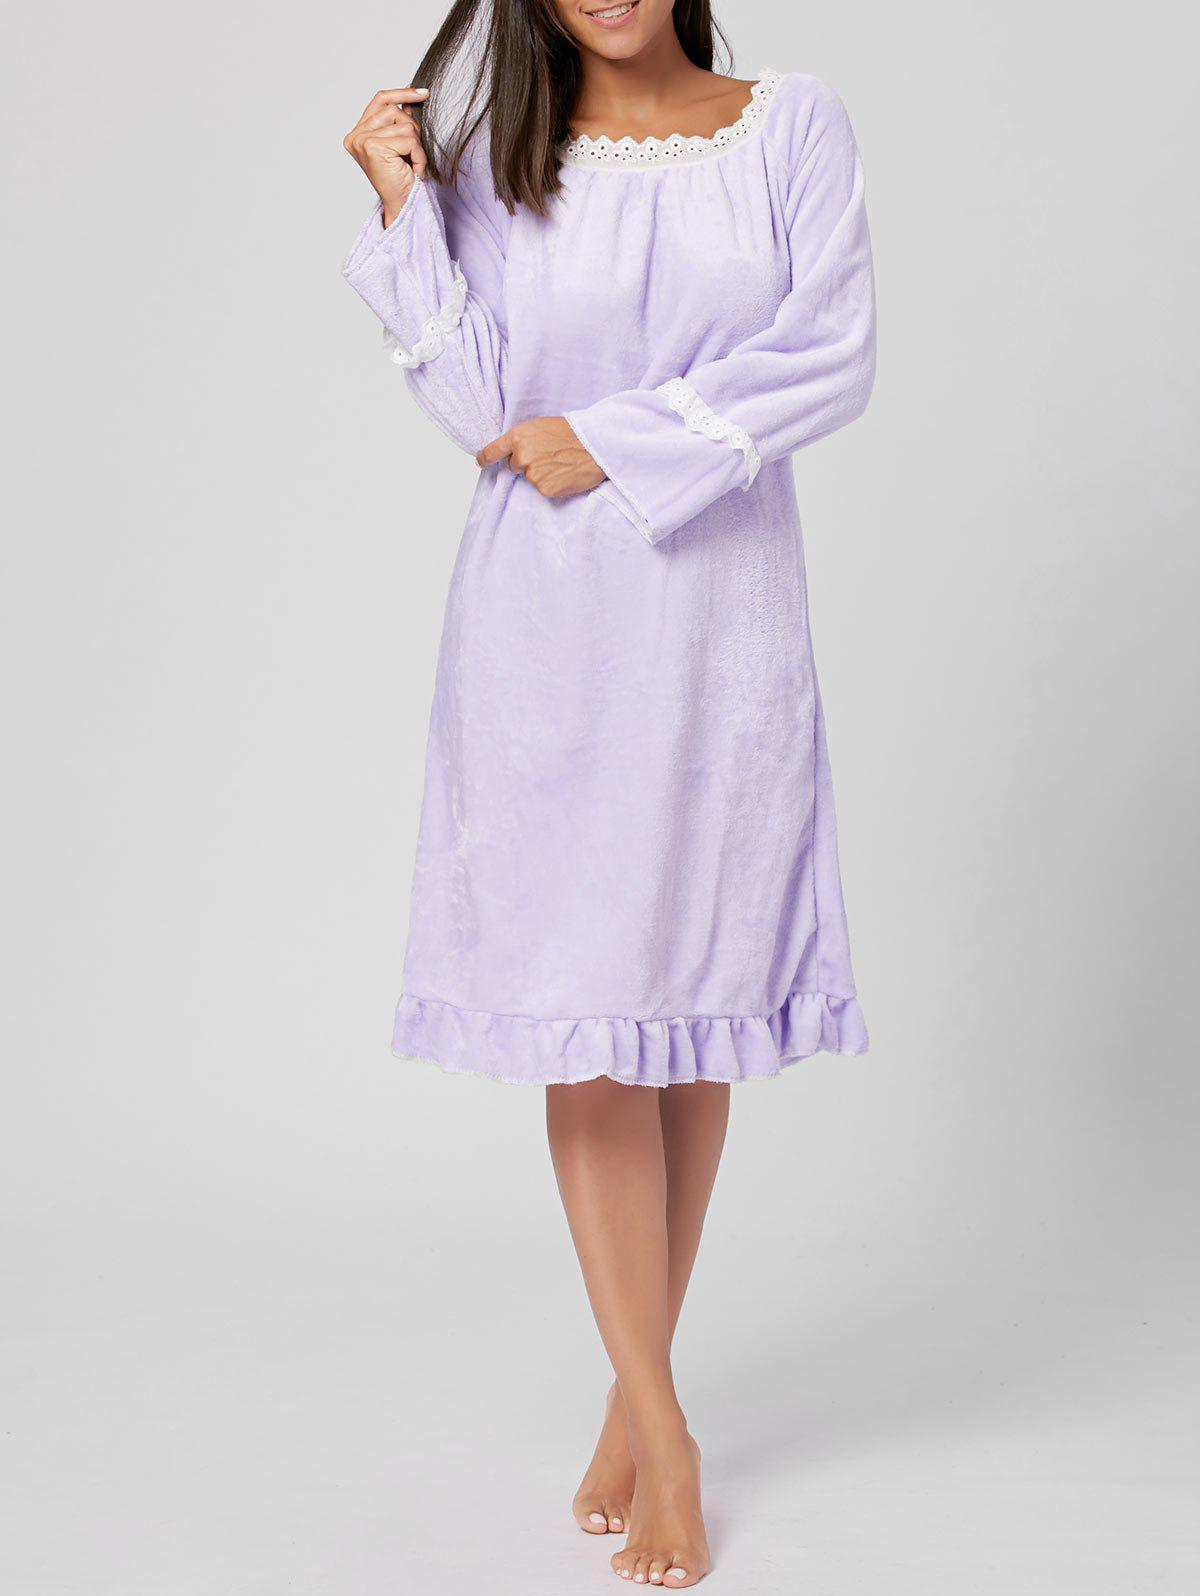 Fuzzy Flounce Winter Loungewear Robe - Violet Clair XL